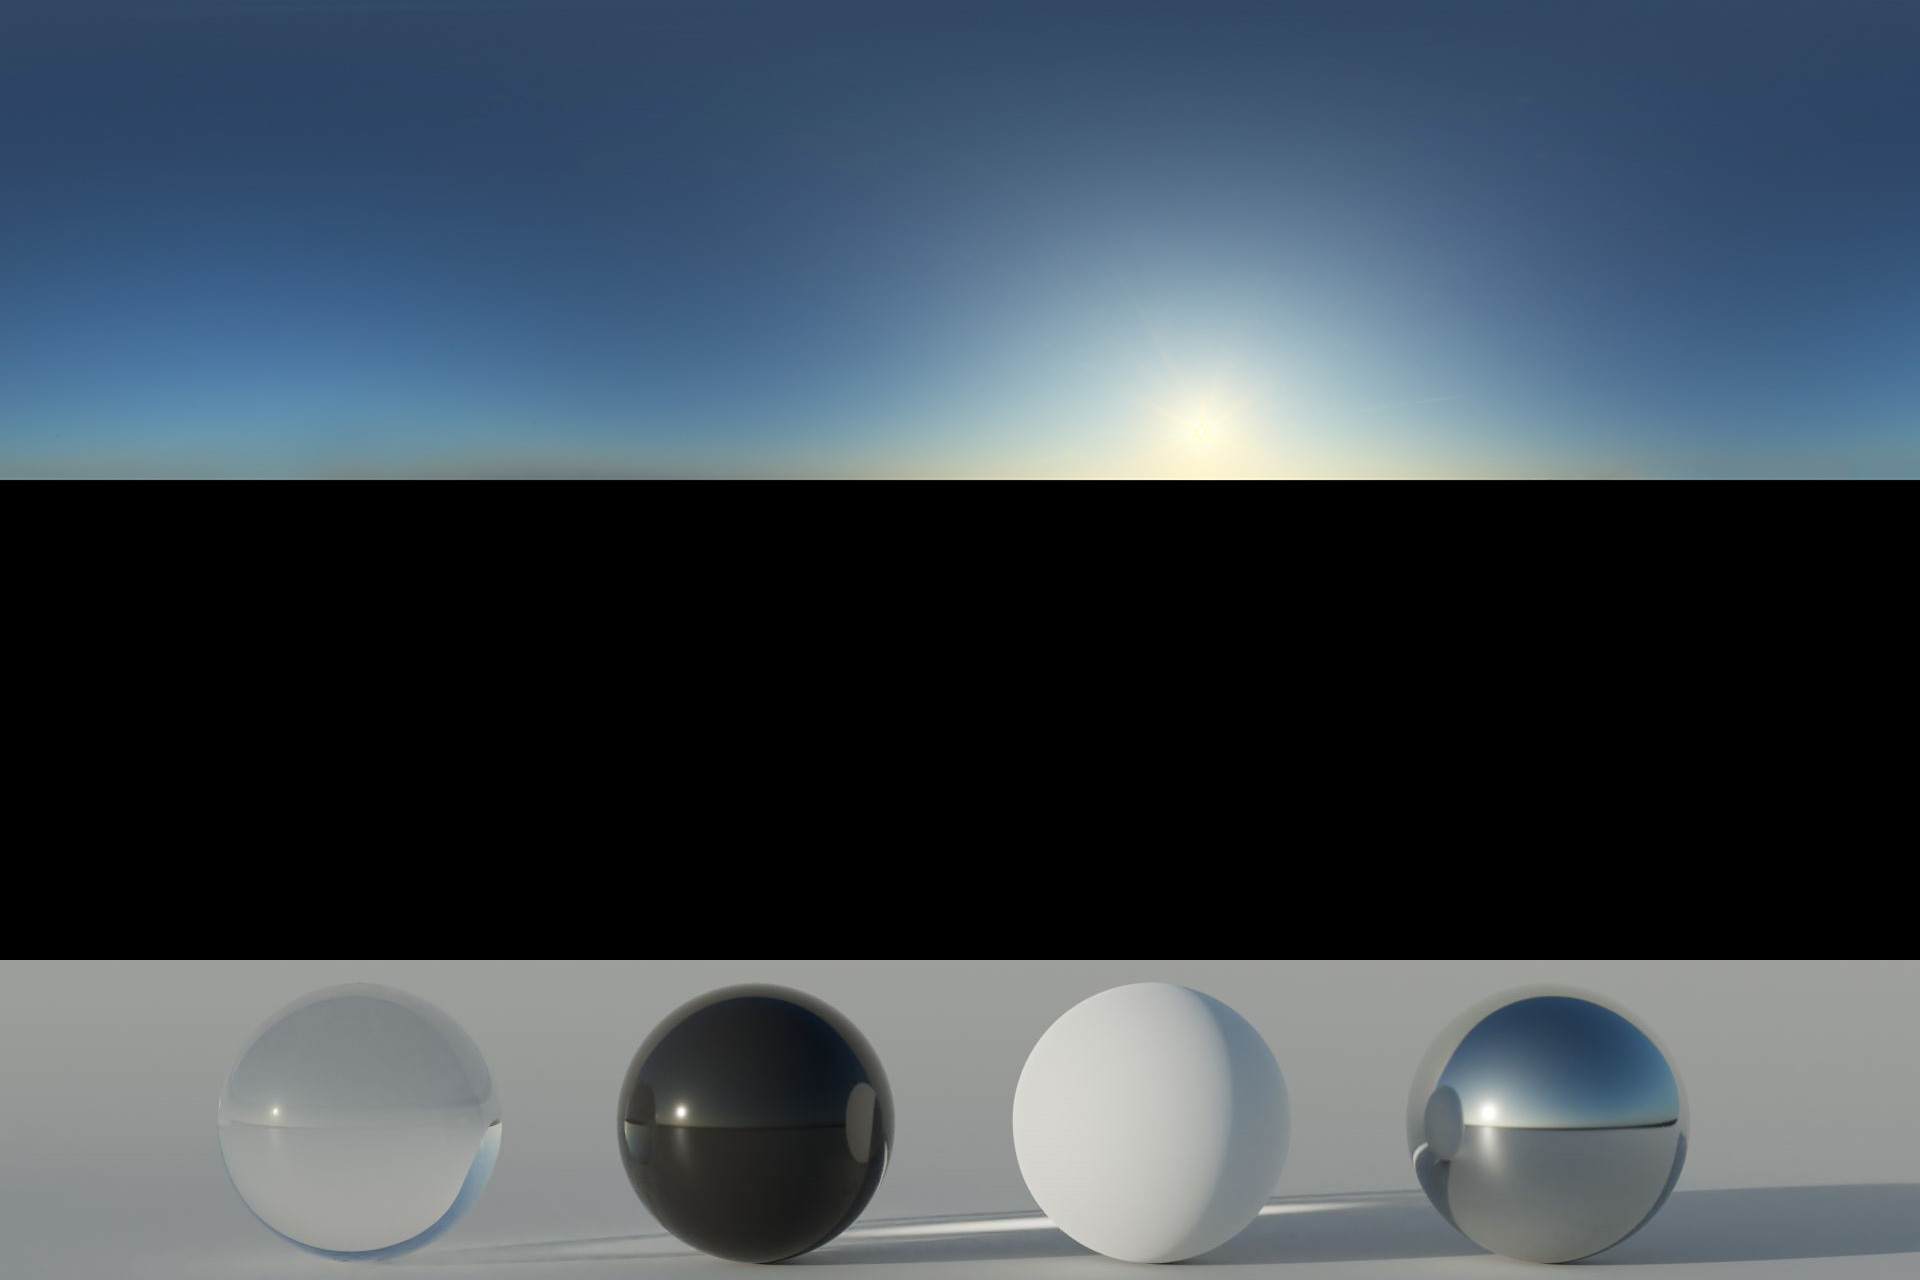 Download Awesome HDRi Sky 026